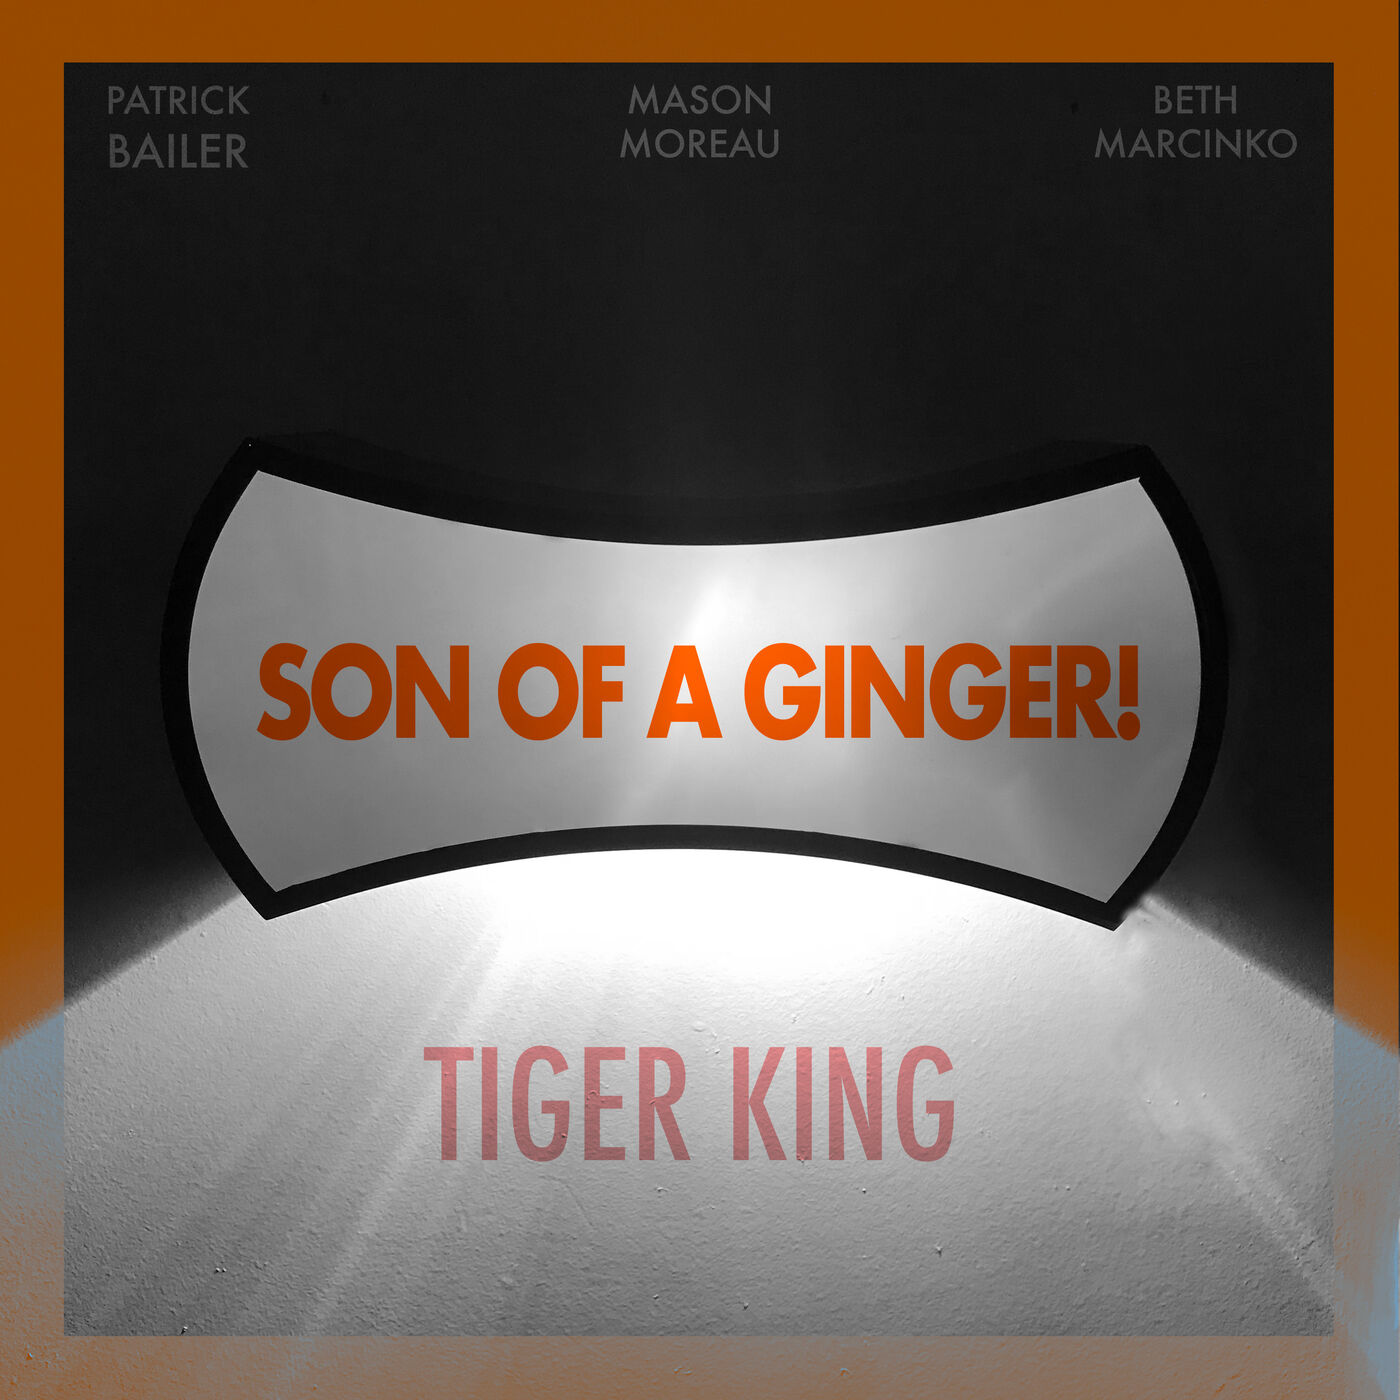 Tiger King (Dir. by Rebecca Chaiklin and Eric Goode)